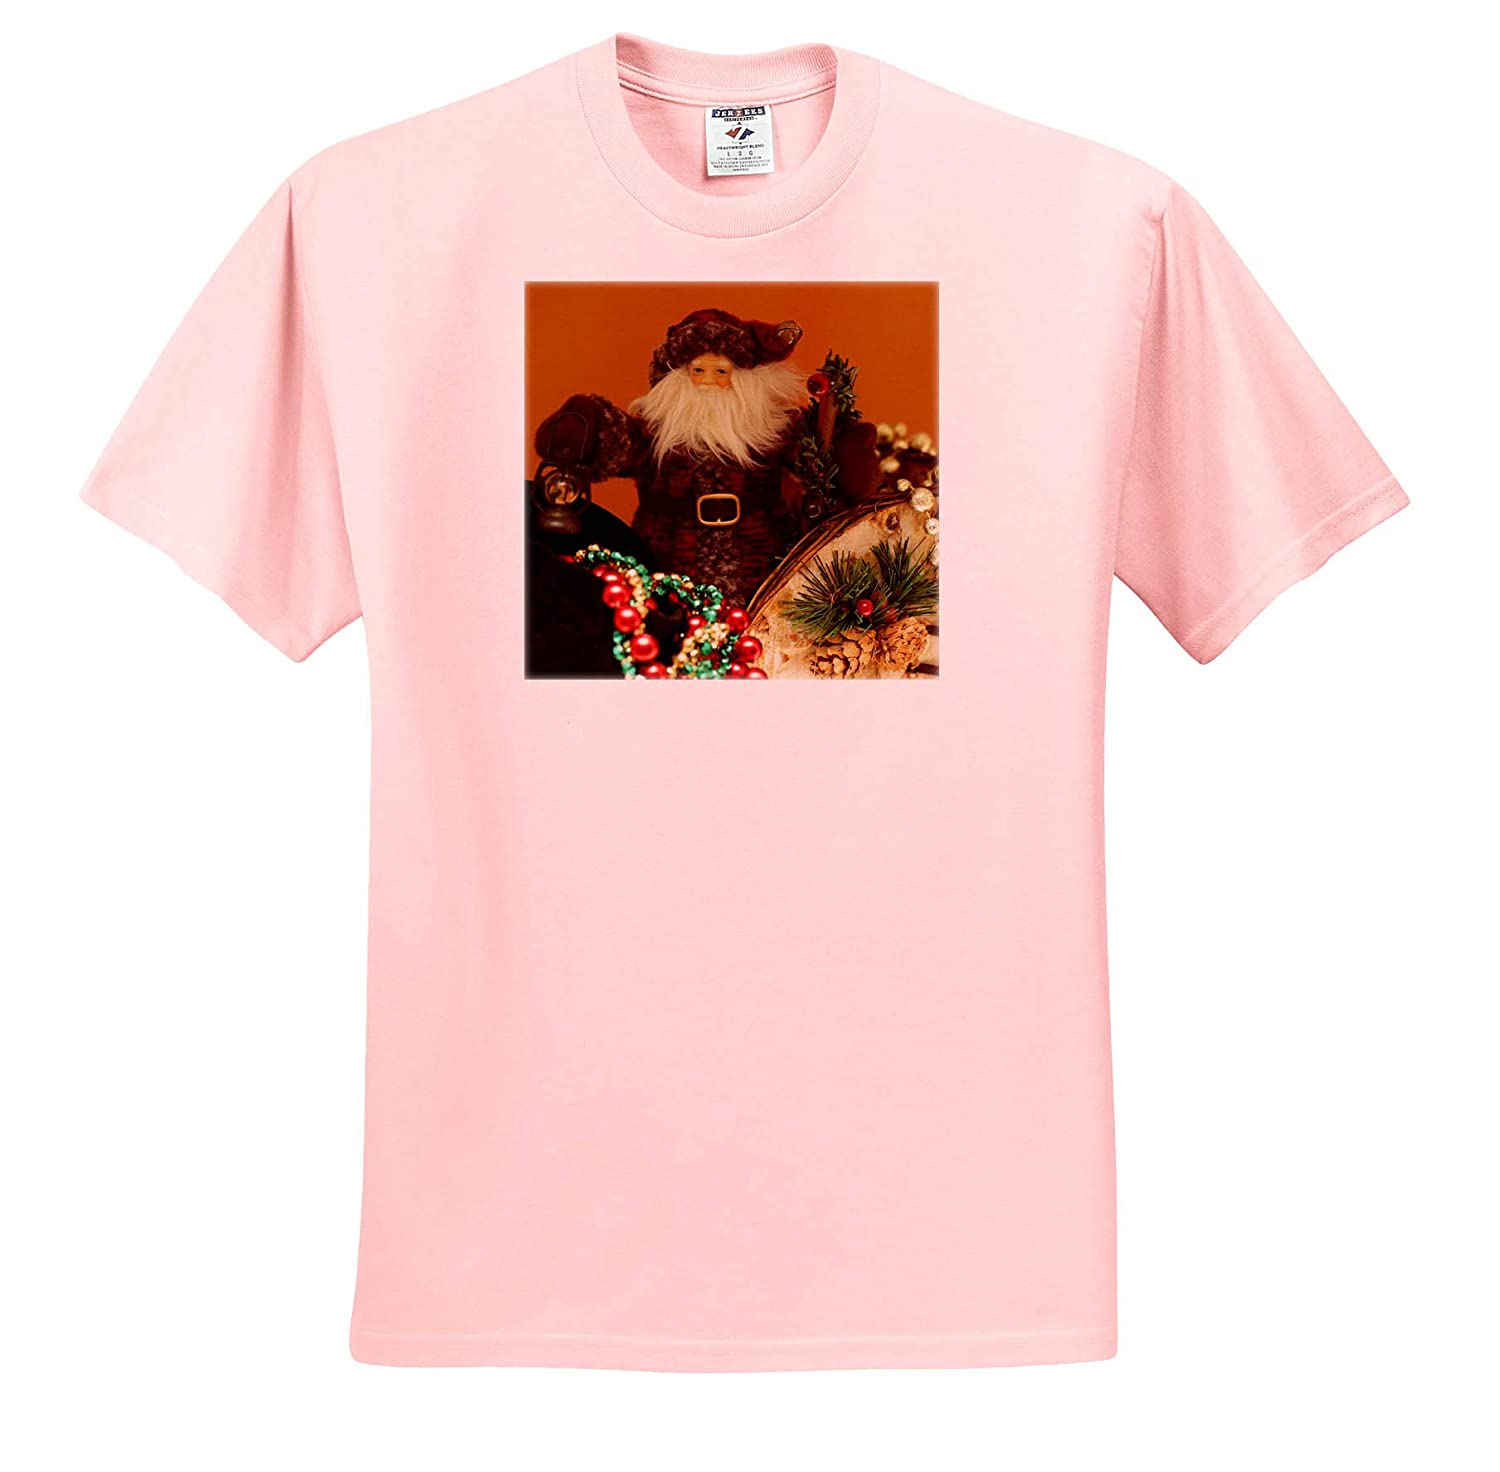 3dRose Stamp City Holiday - T-Shirts Photograph of a Vintage St Nick Sitting in his Sleigh for The Holiday